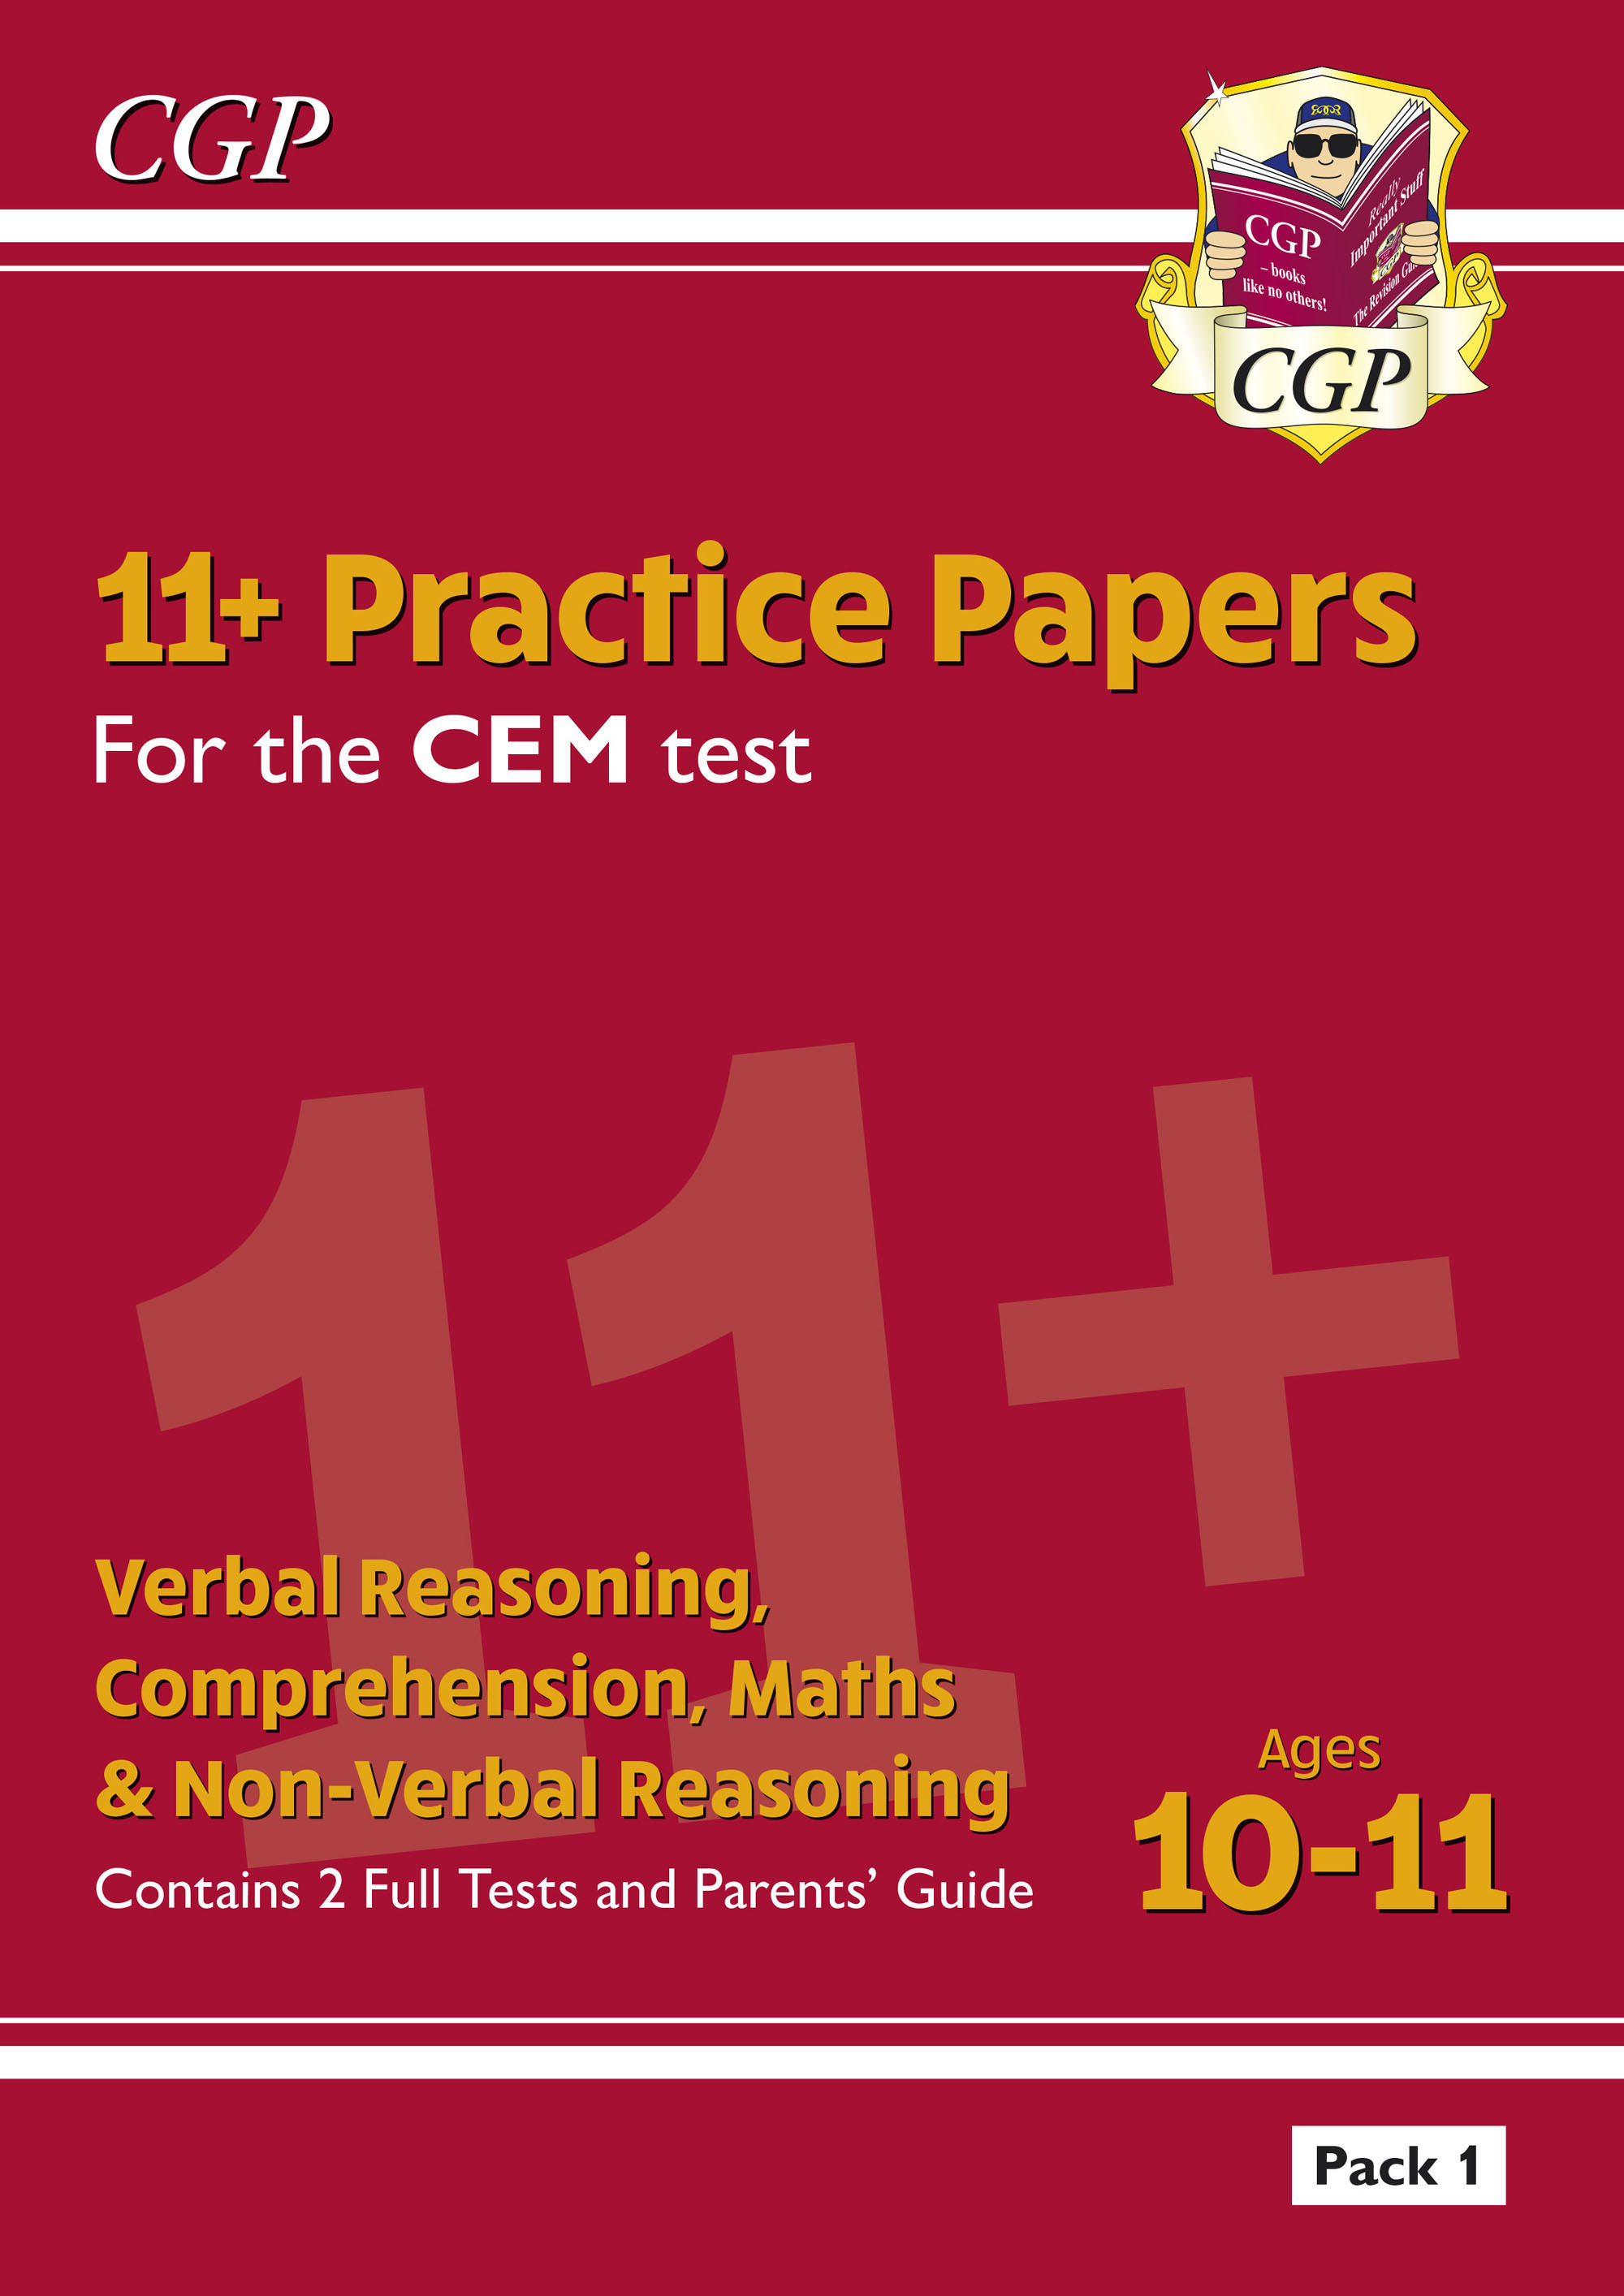 ELPDE2DK - New 11+ CEM Practice Papers: Ages 10-11 - Pack 1 (with Parents' Guide)